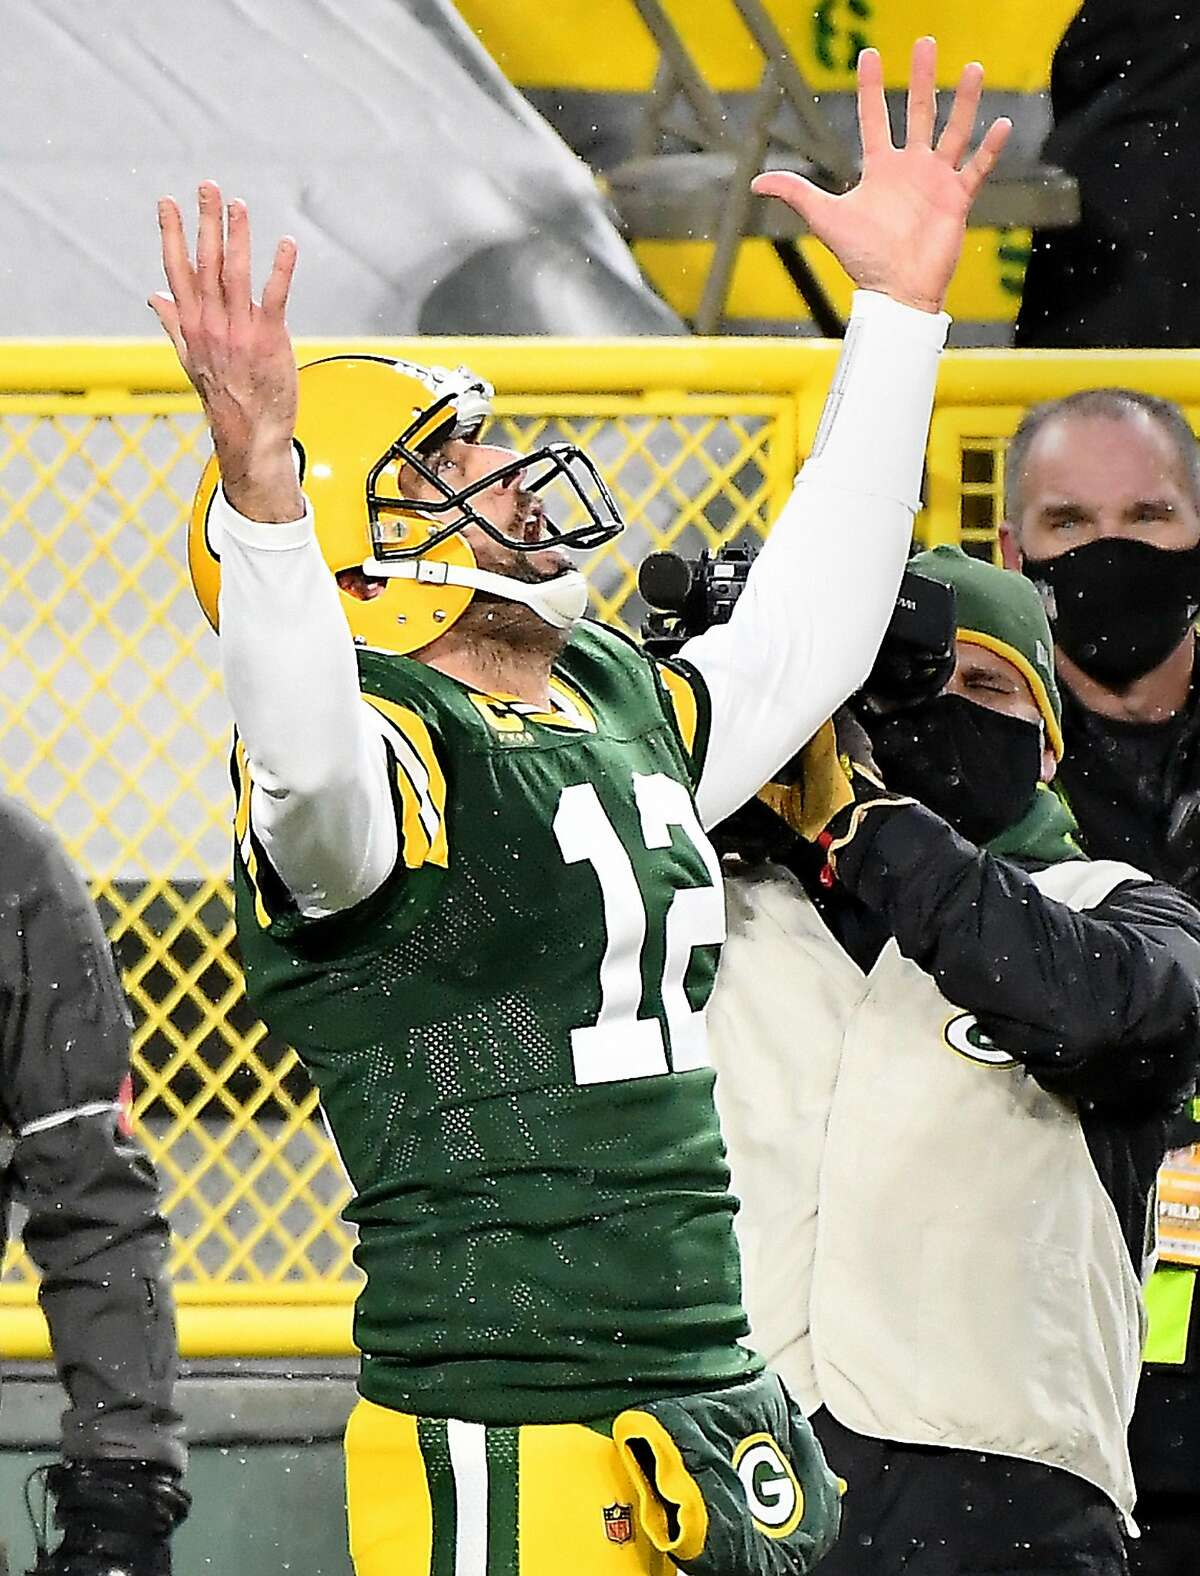 Green Bay Packers quarterback Aaron Rodgers (12) looks to the sky after scoring on a 1-yard touchdown run against the Los Angeles Rams in the second quarter during an NFC Divisional playoff game at Lambeau Field in Green Bay, Wisconsin, on Saturday, Jan. 16, 2021. (Wally Skalij/Los Angeles Times/TNS)